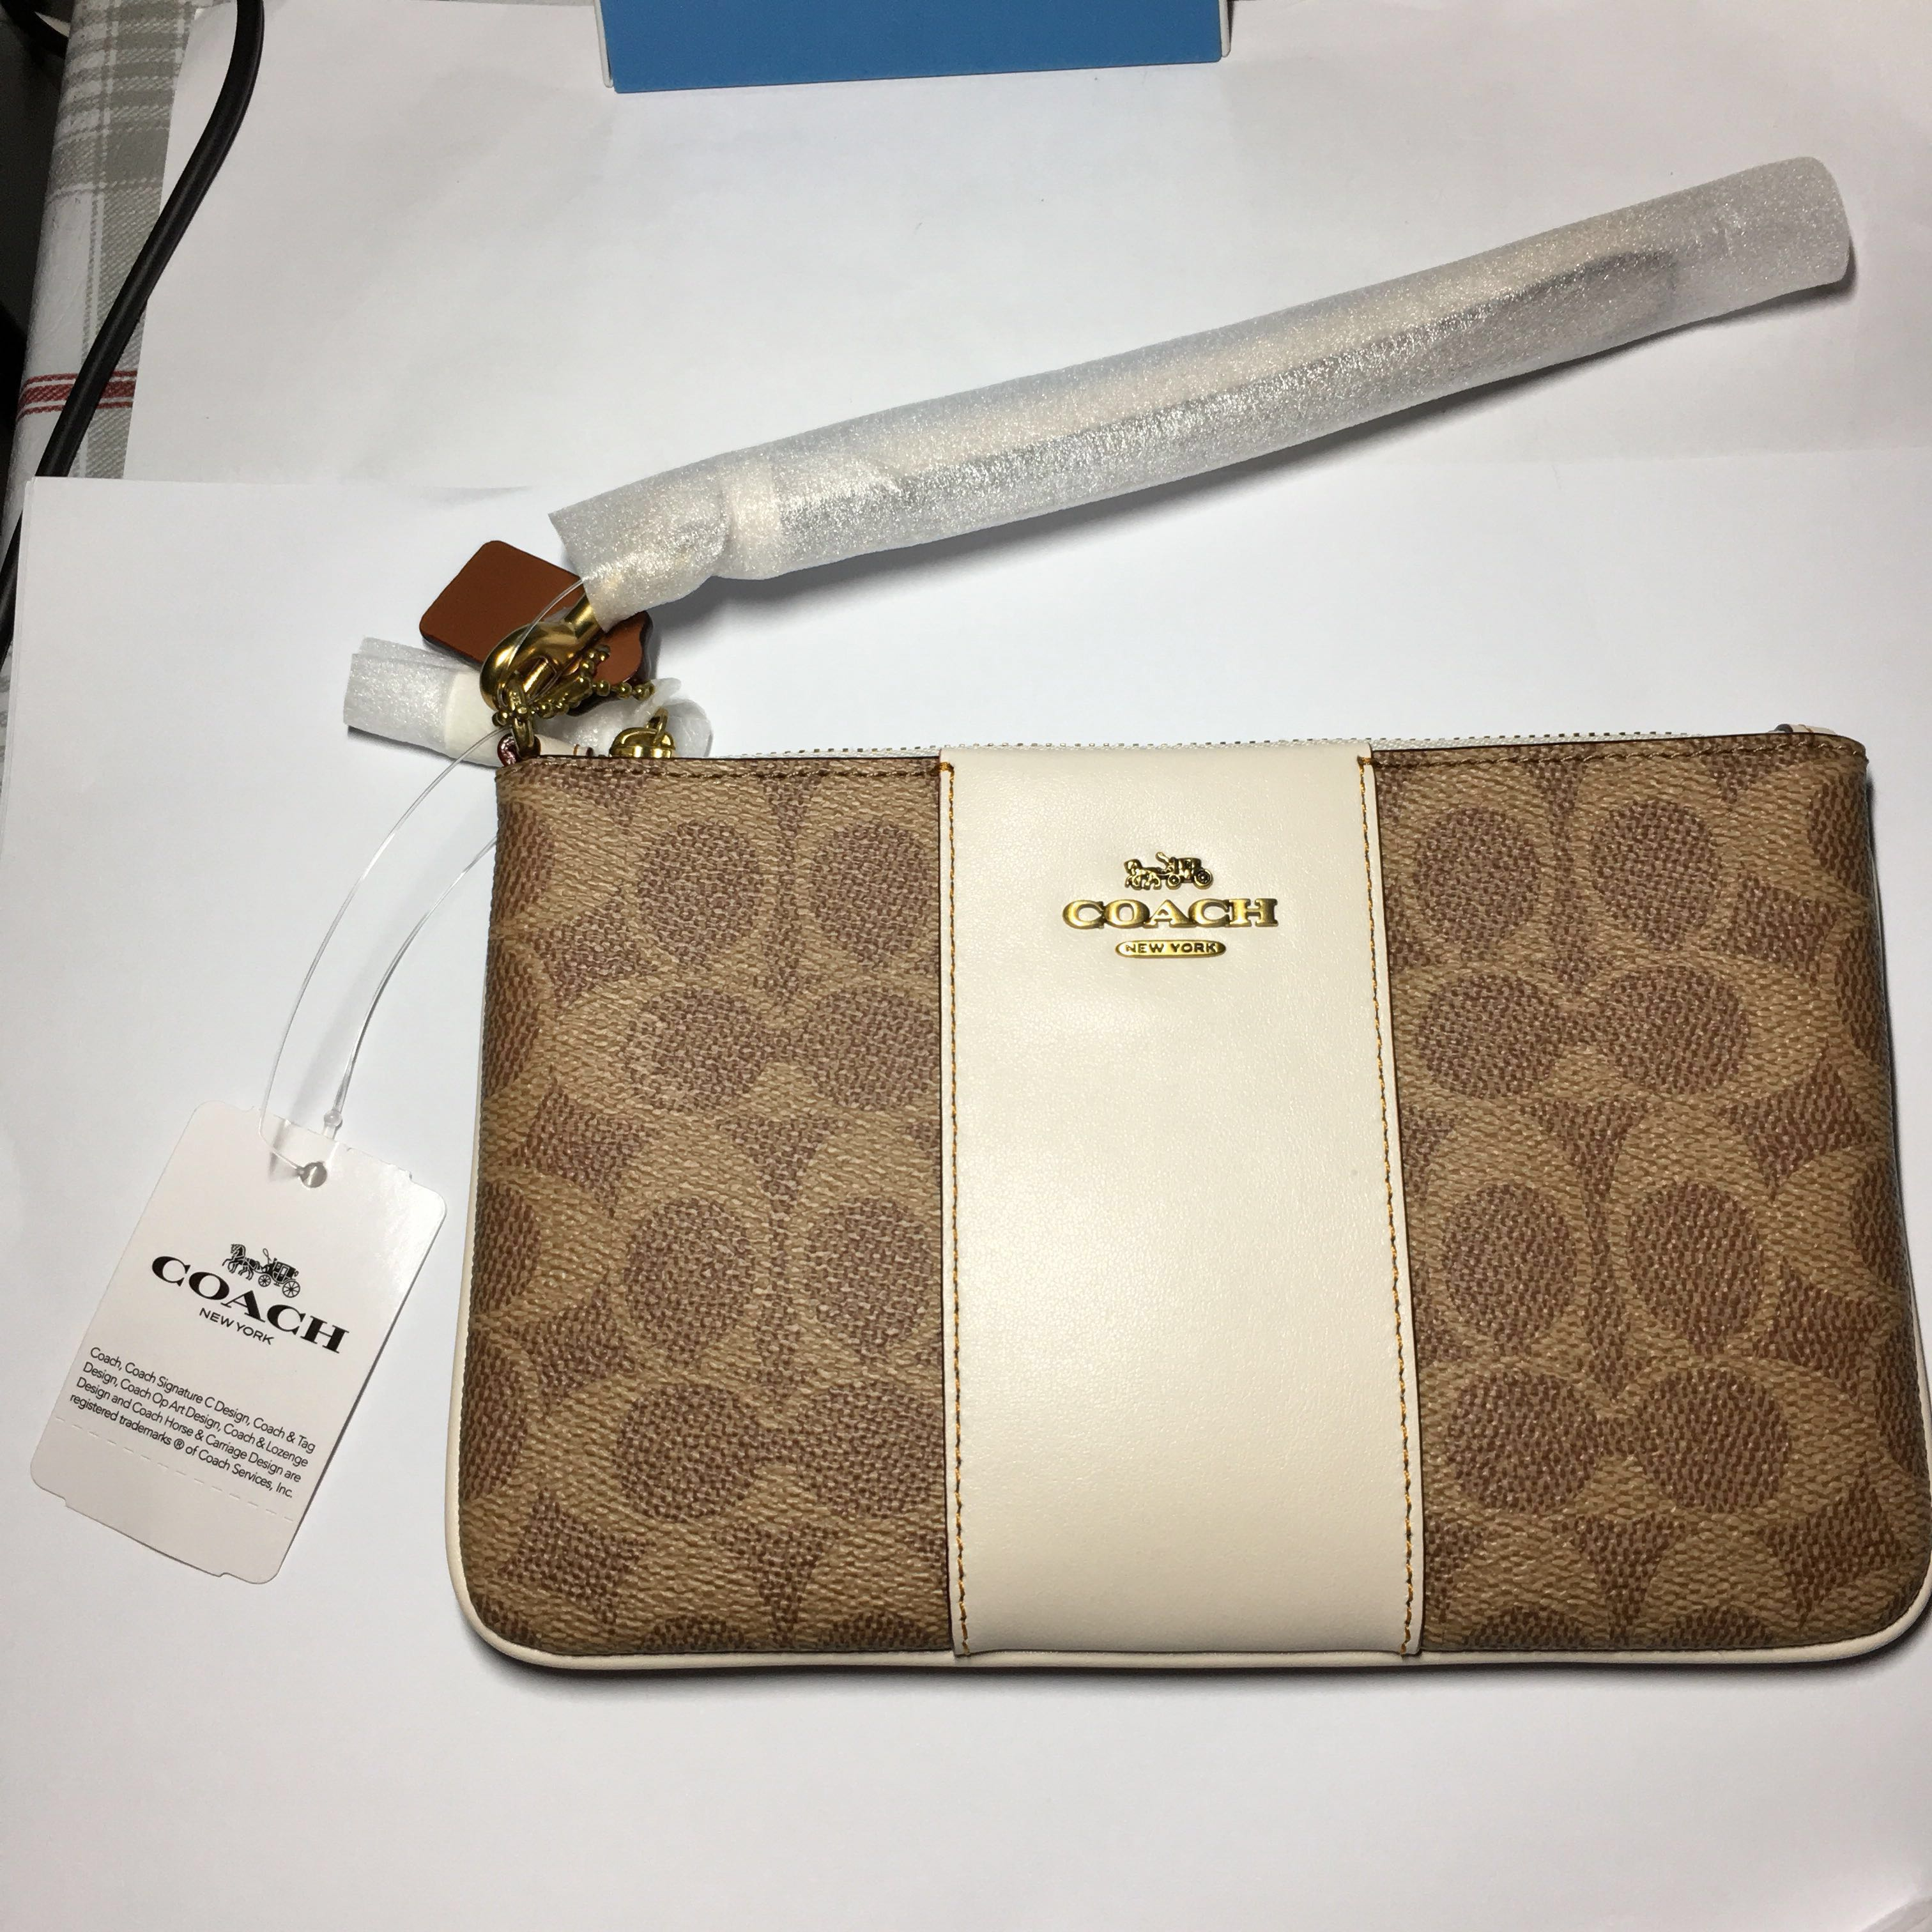 a7f8d935a SMALL WRISTLET IN COLORBLOCK SIGNATURE CANVAS, Luxury, Bags & Wallets,  Wallets on Carousell